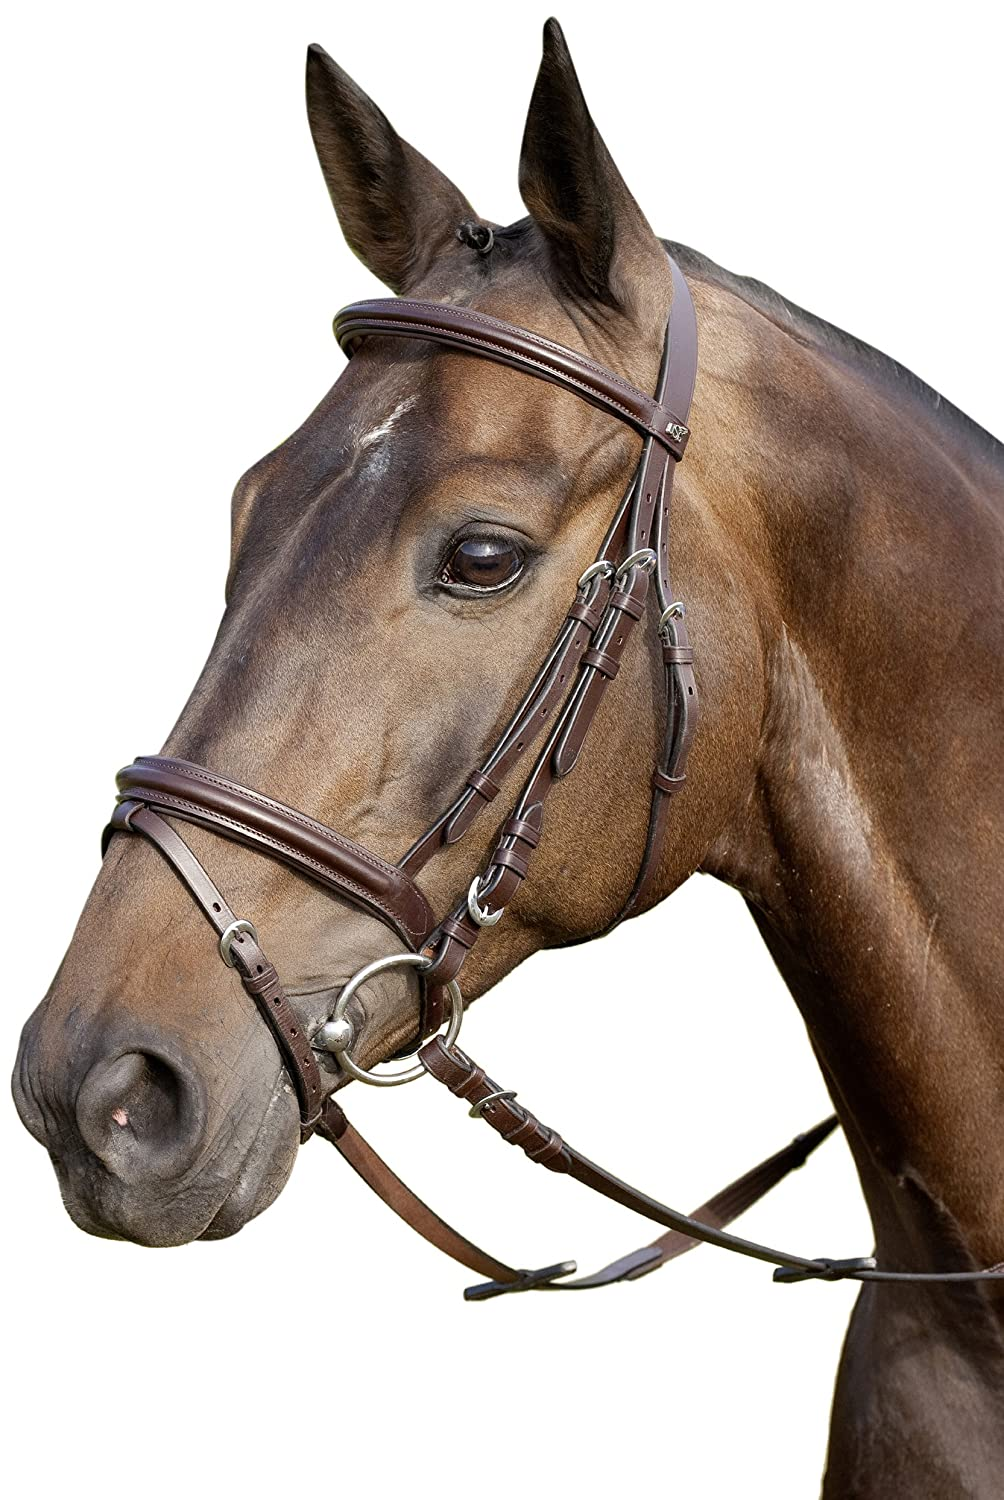 USG Bridle Classico Flash Noseband with Web Reins, Pony, Silver Fittings/ Black Leather UNJFB 2000